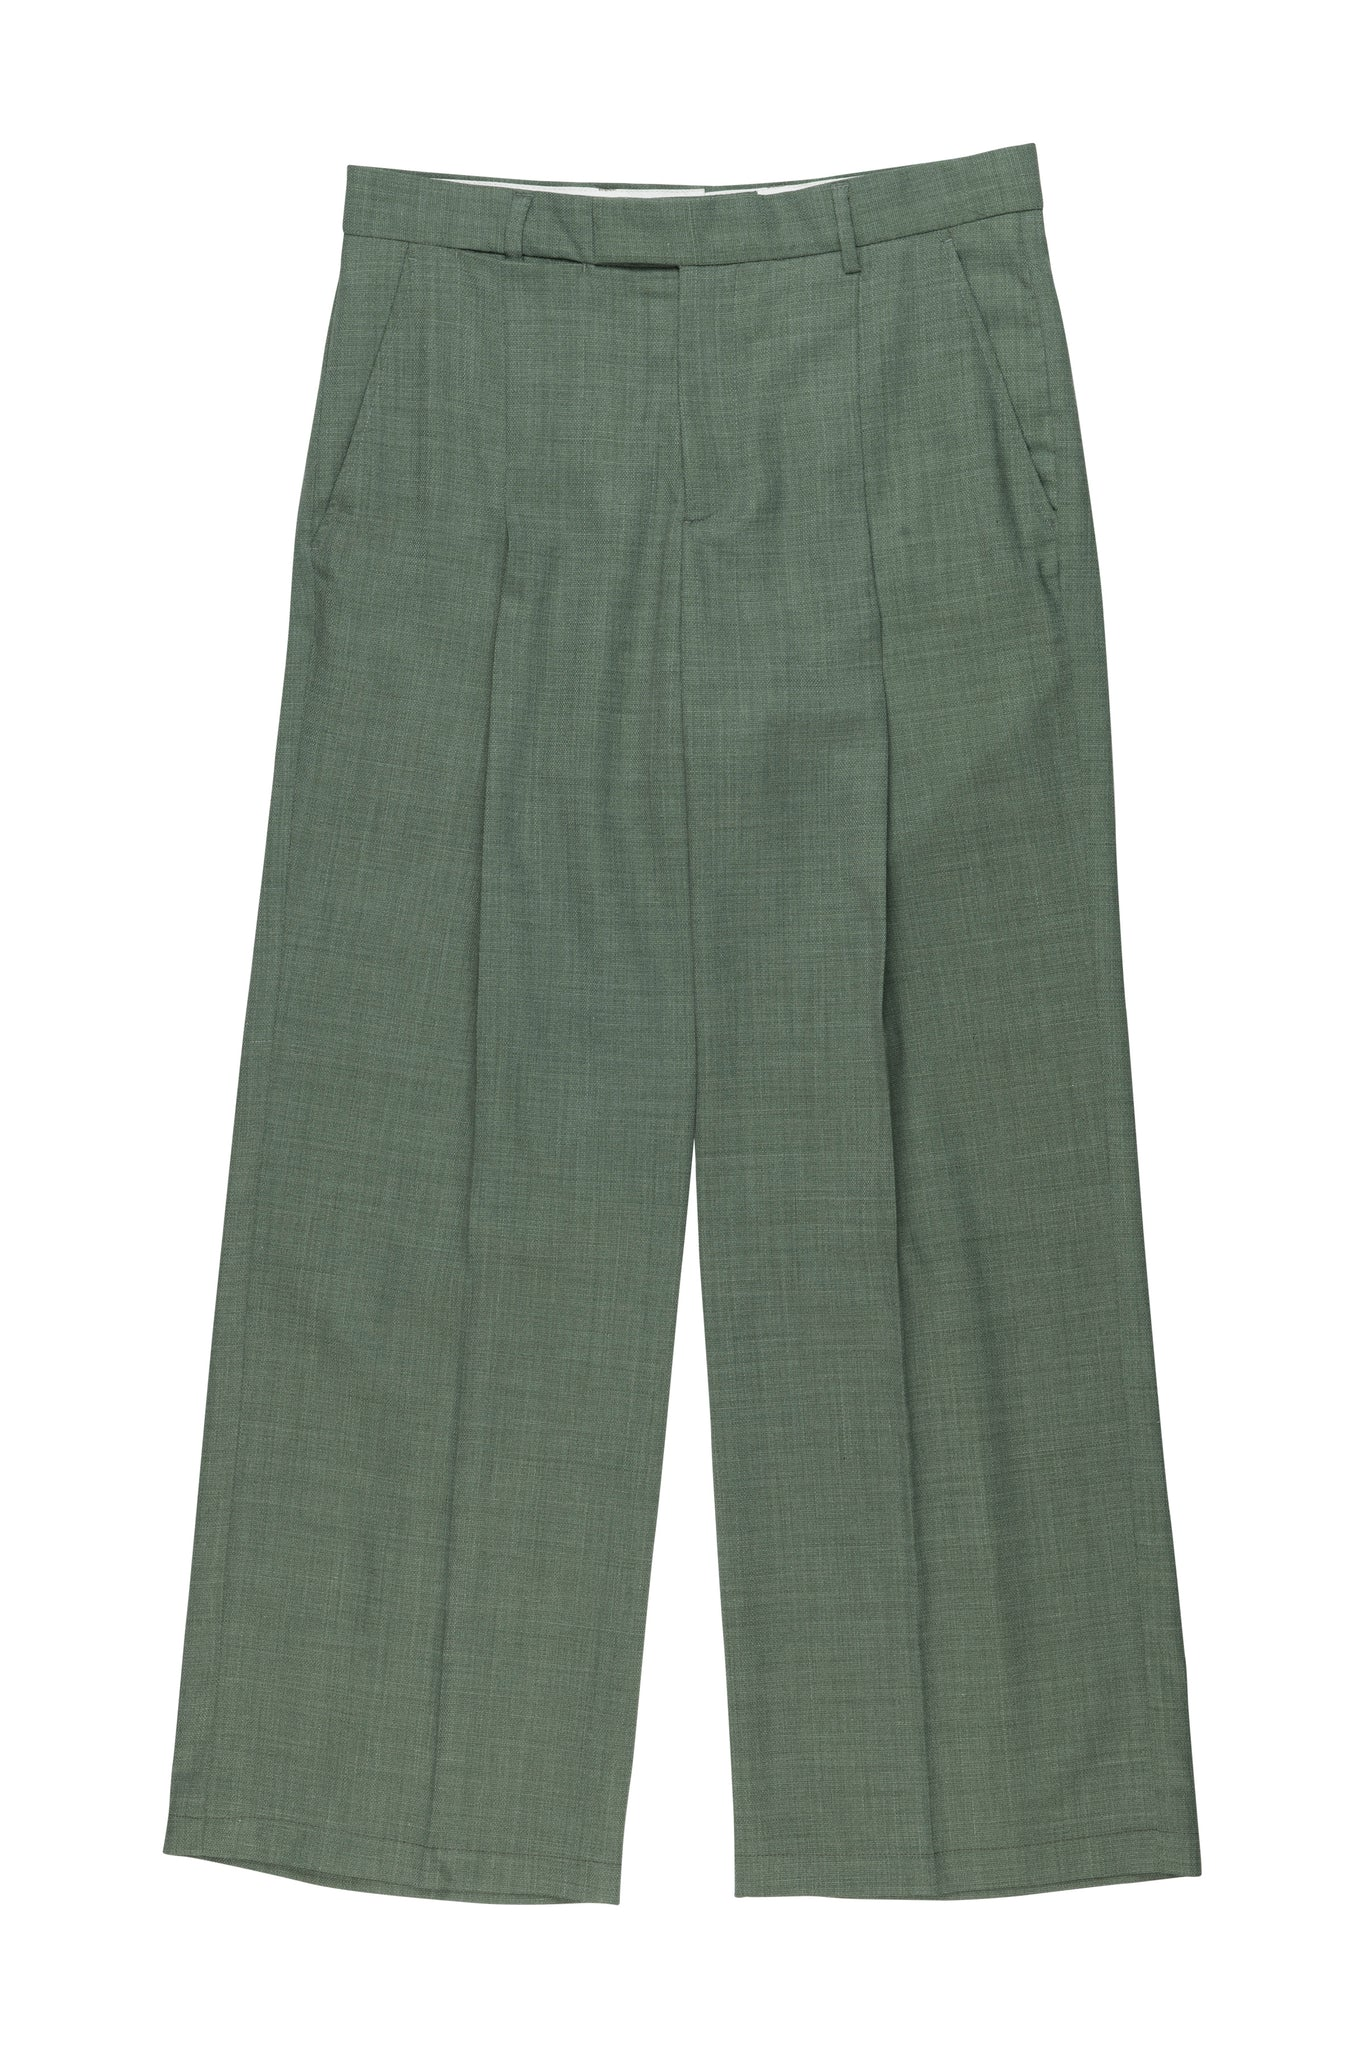 Trupo Trousers Sage green from designer Martin Asbjorn